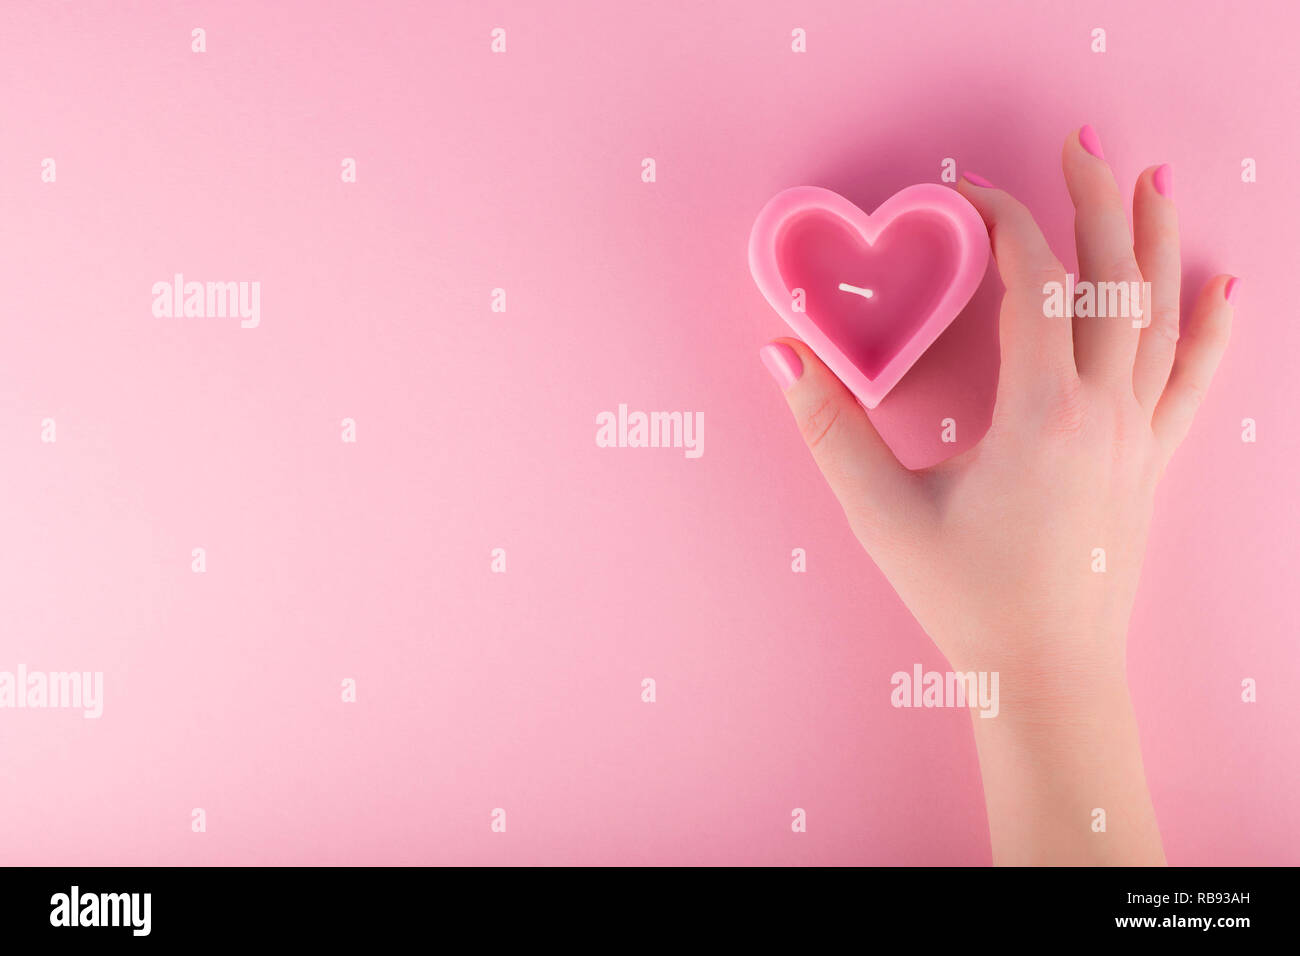 Female hand holding heart shaped pink candle. Valentines day concept - Stock Image